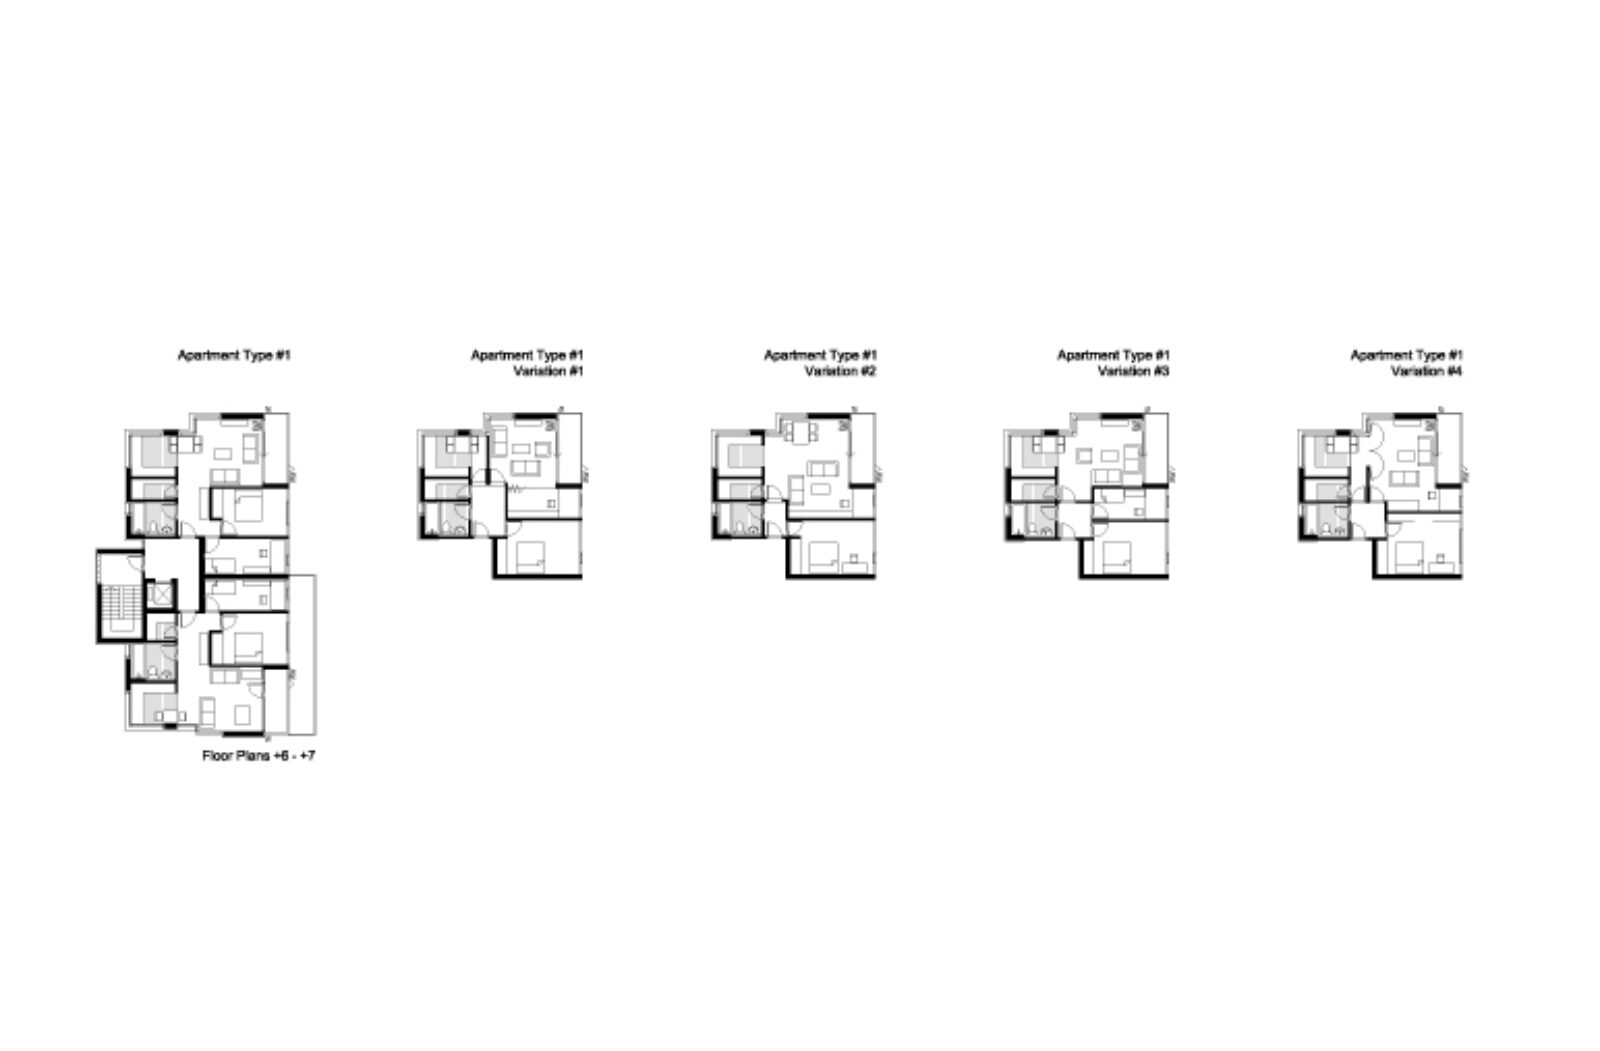 Floor Plans – Variations of Apartments